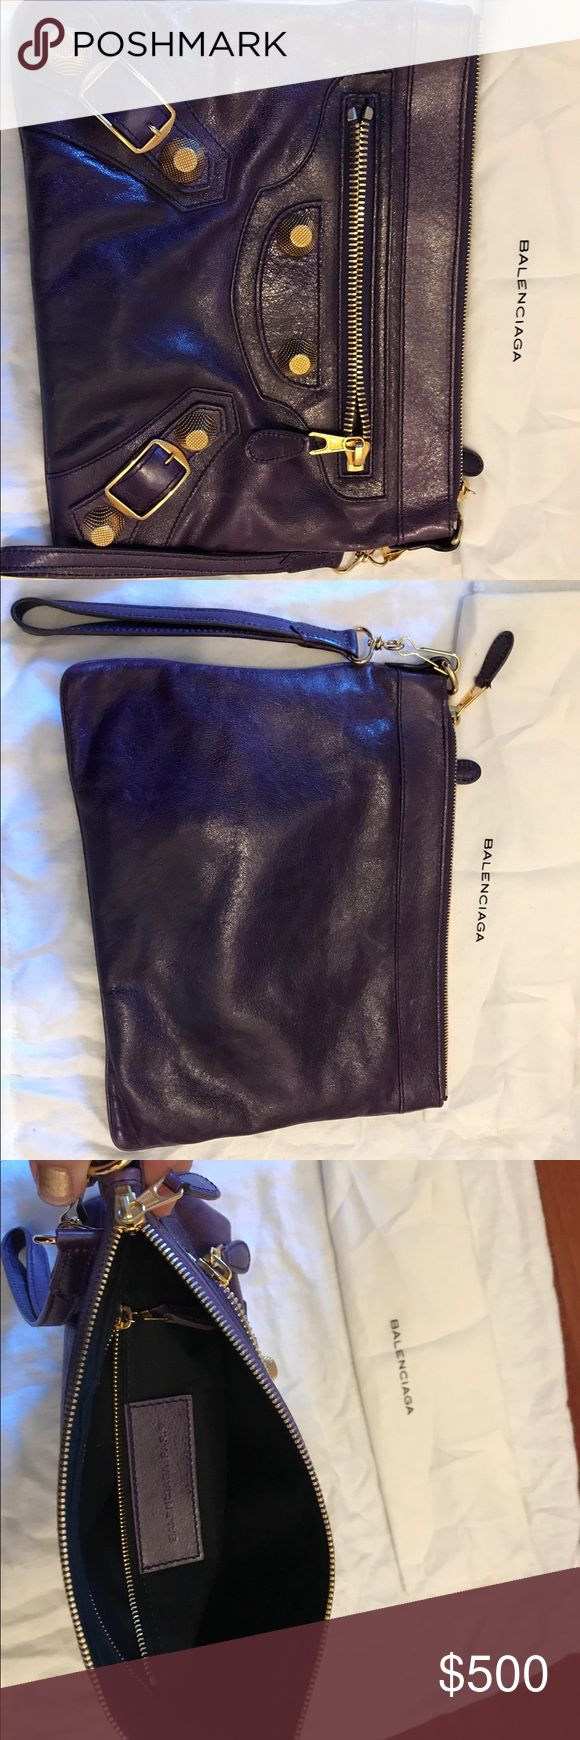 Balenciaga Clutch Authentic Balenciaga clutch in great condition.  Purple leather with gold tone hardware. Balenciaga Bags Clutches & Wristlets